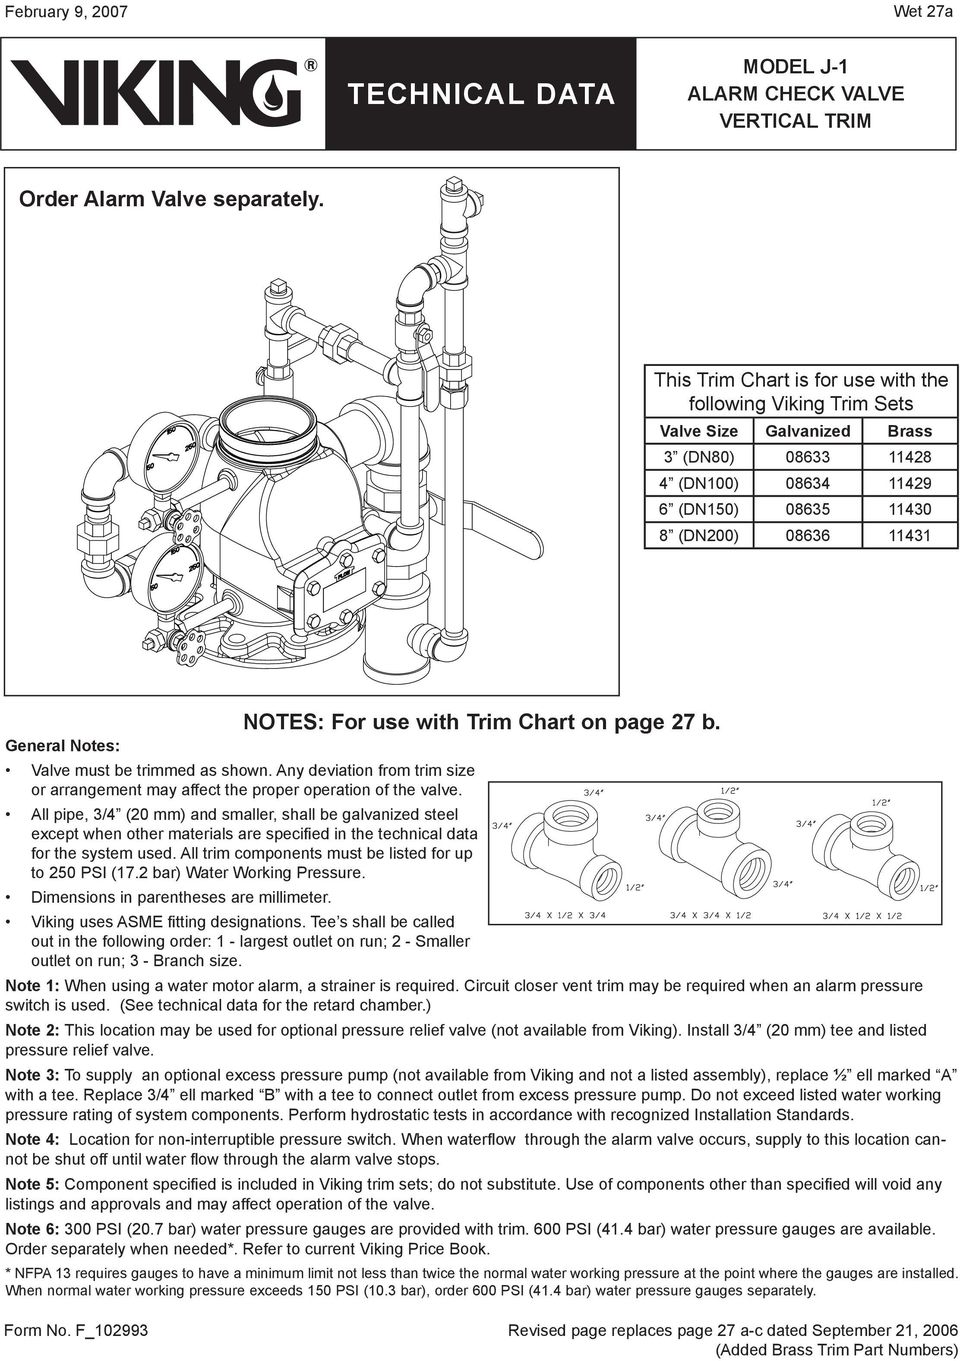 must be trimmed as shown. Any deviation from trim size or arrangement may affect the proper operation of the valve. NOTES: For use with Trim Chart on page 27 b.